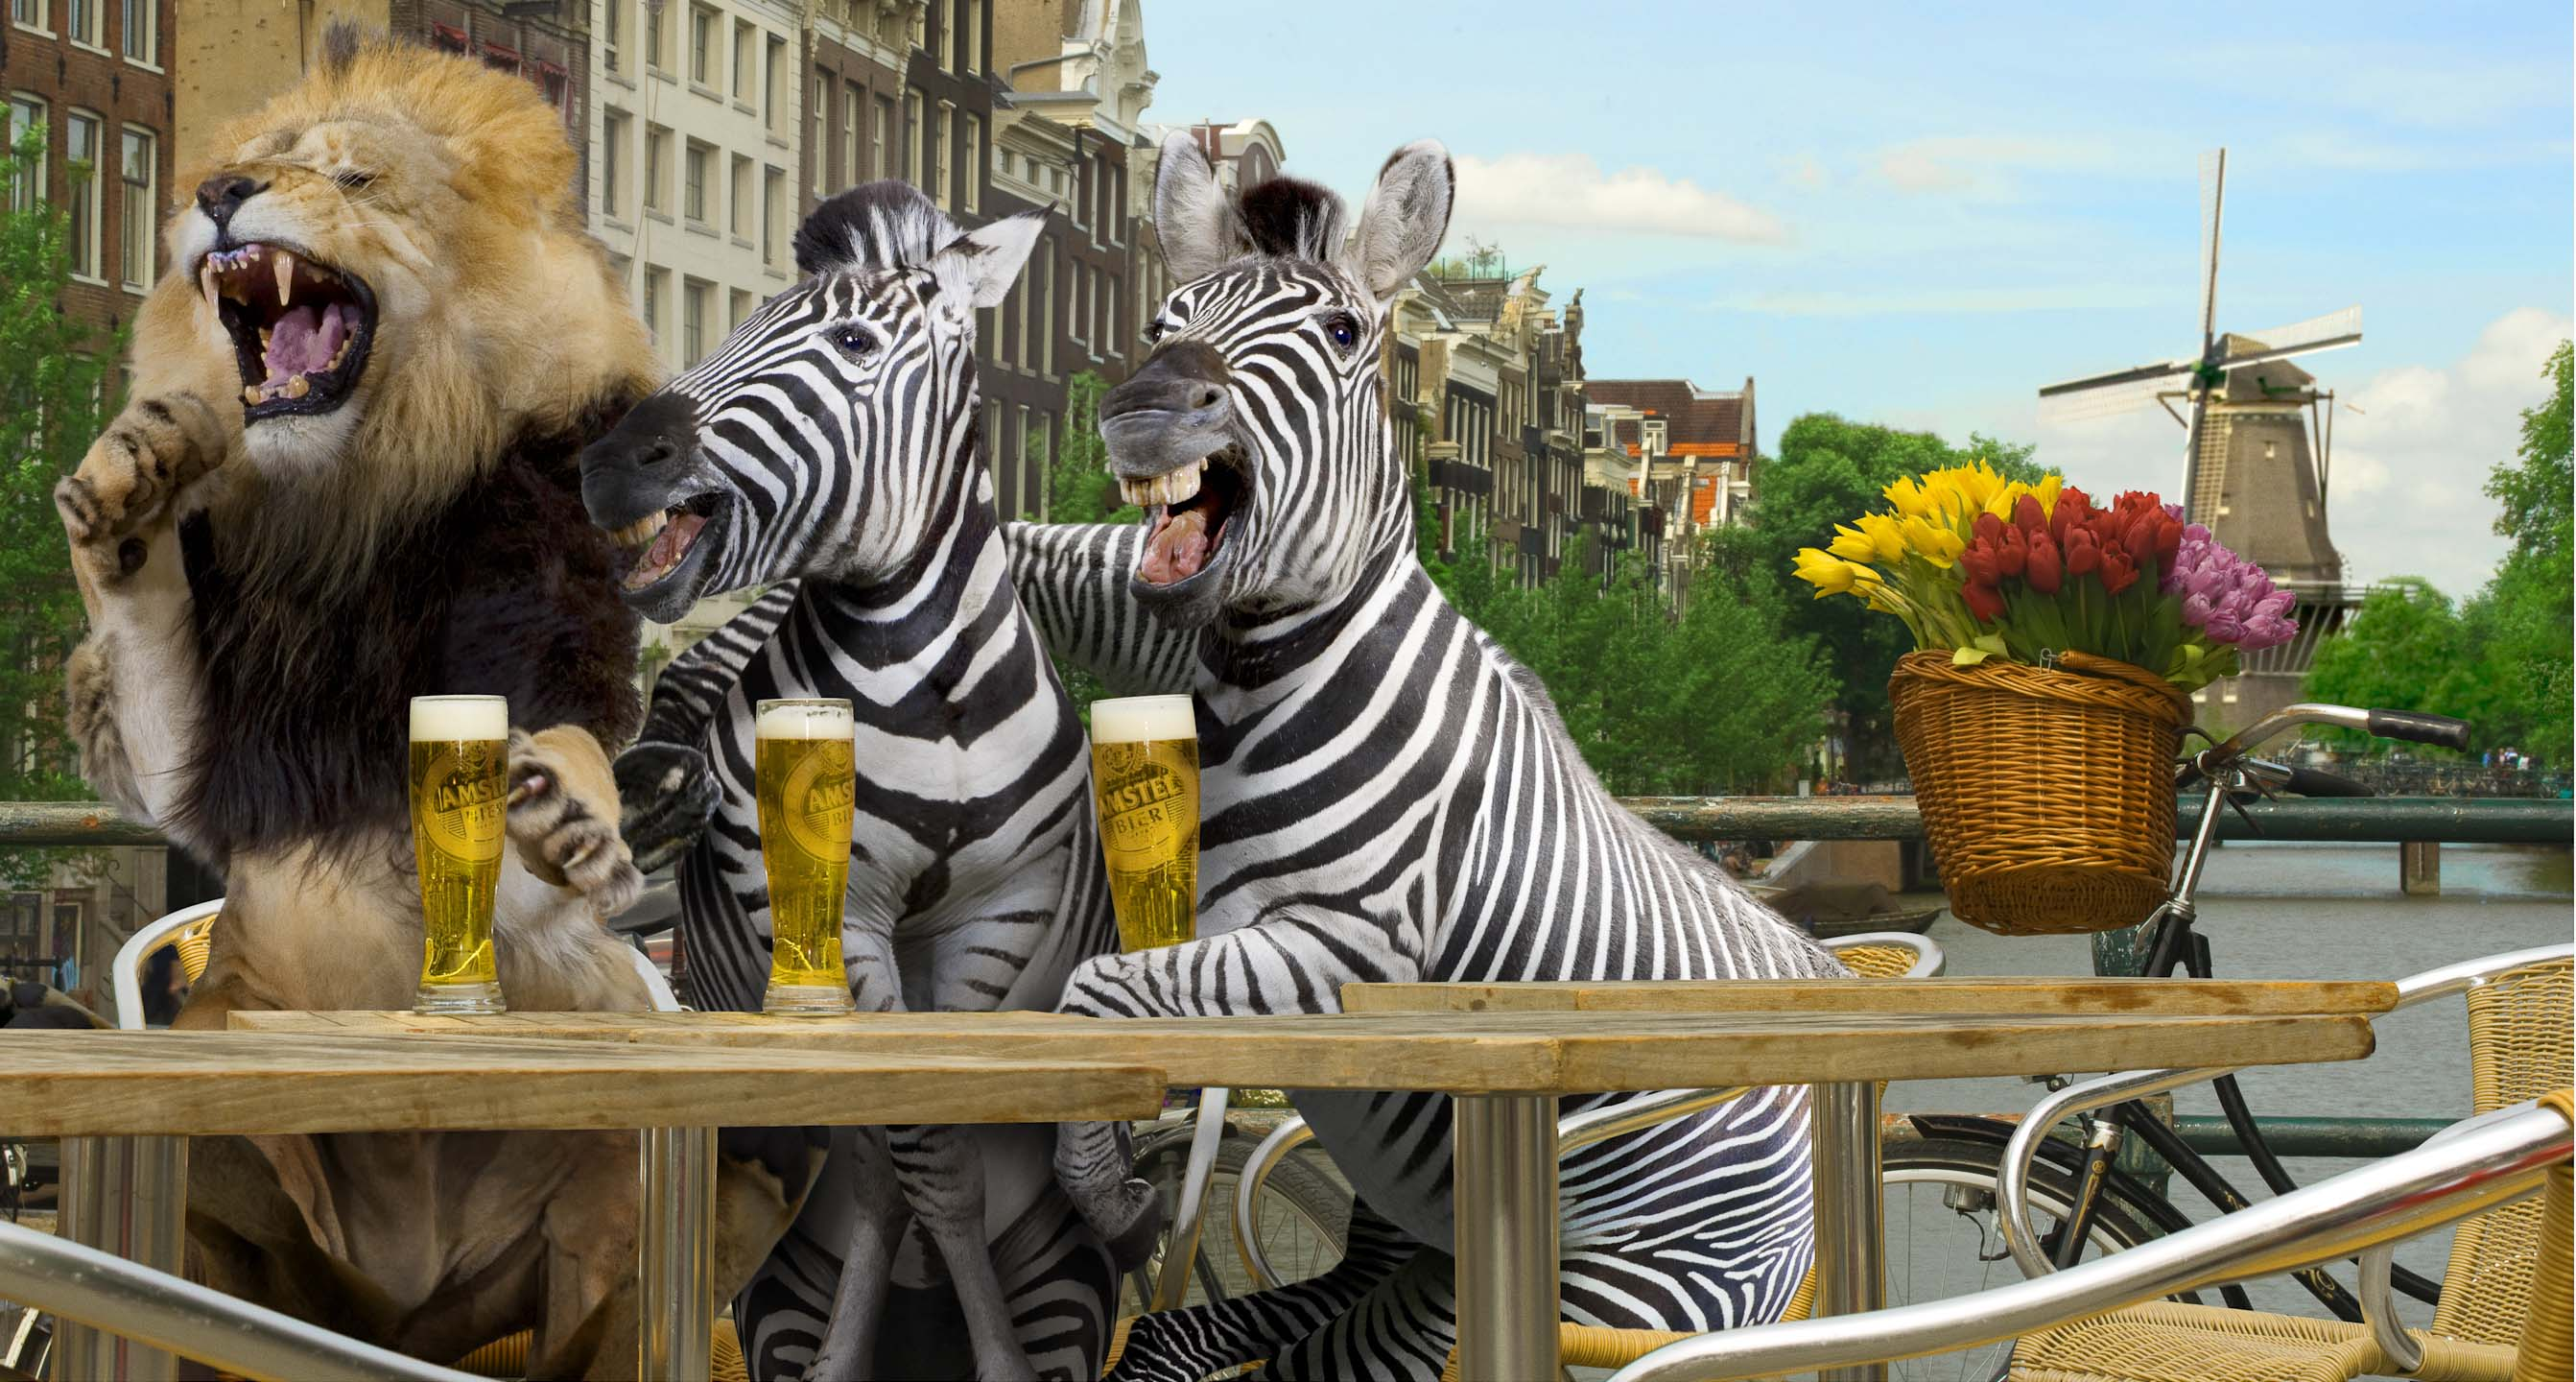 Alex Howe animal lion and zebra sharing pint in Amsterdam Holland by river laughing hunter prey friend